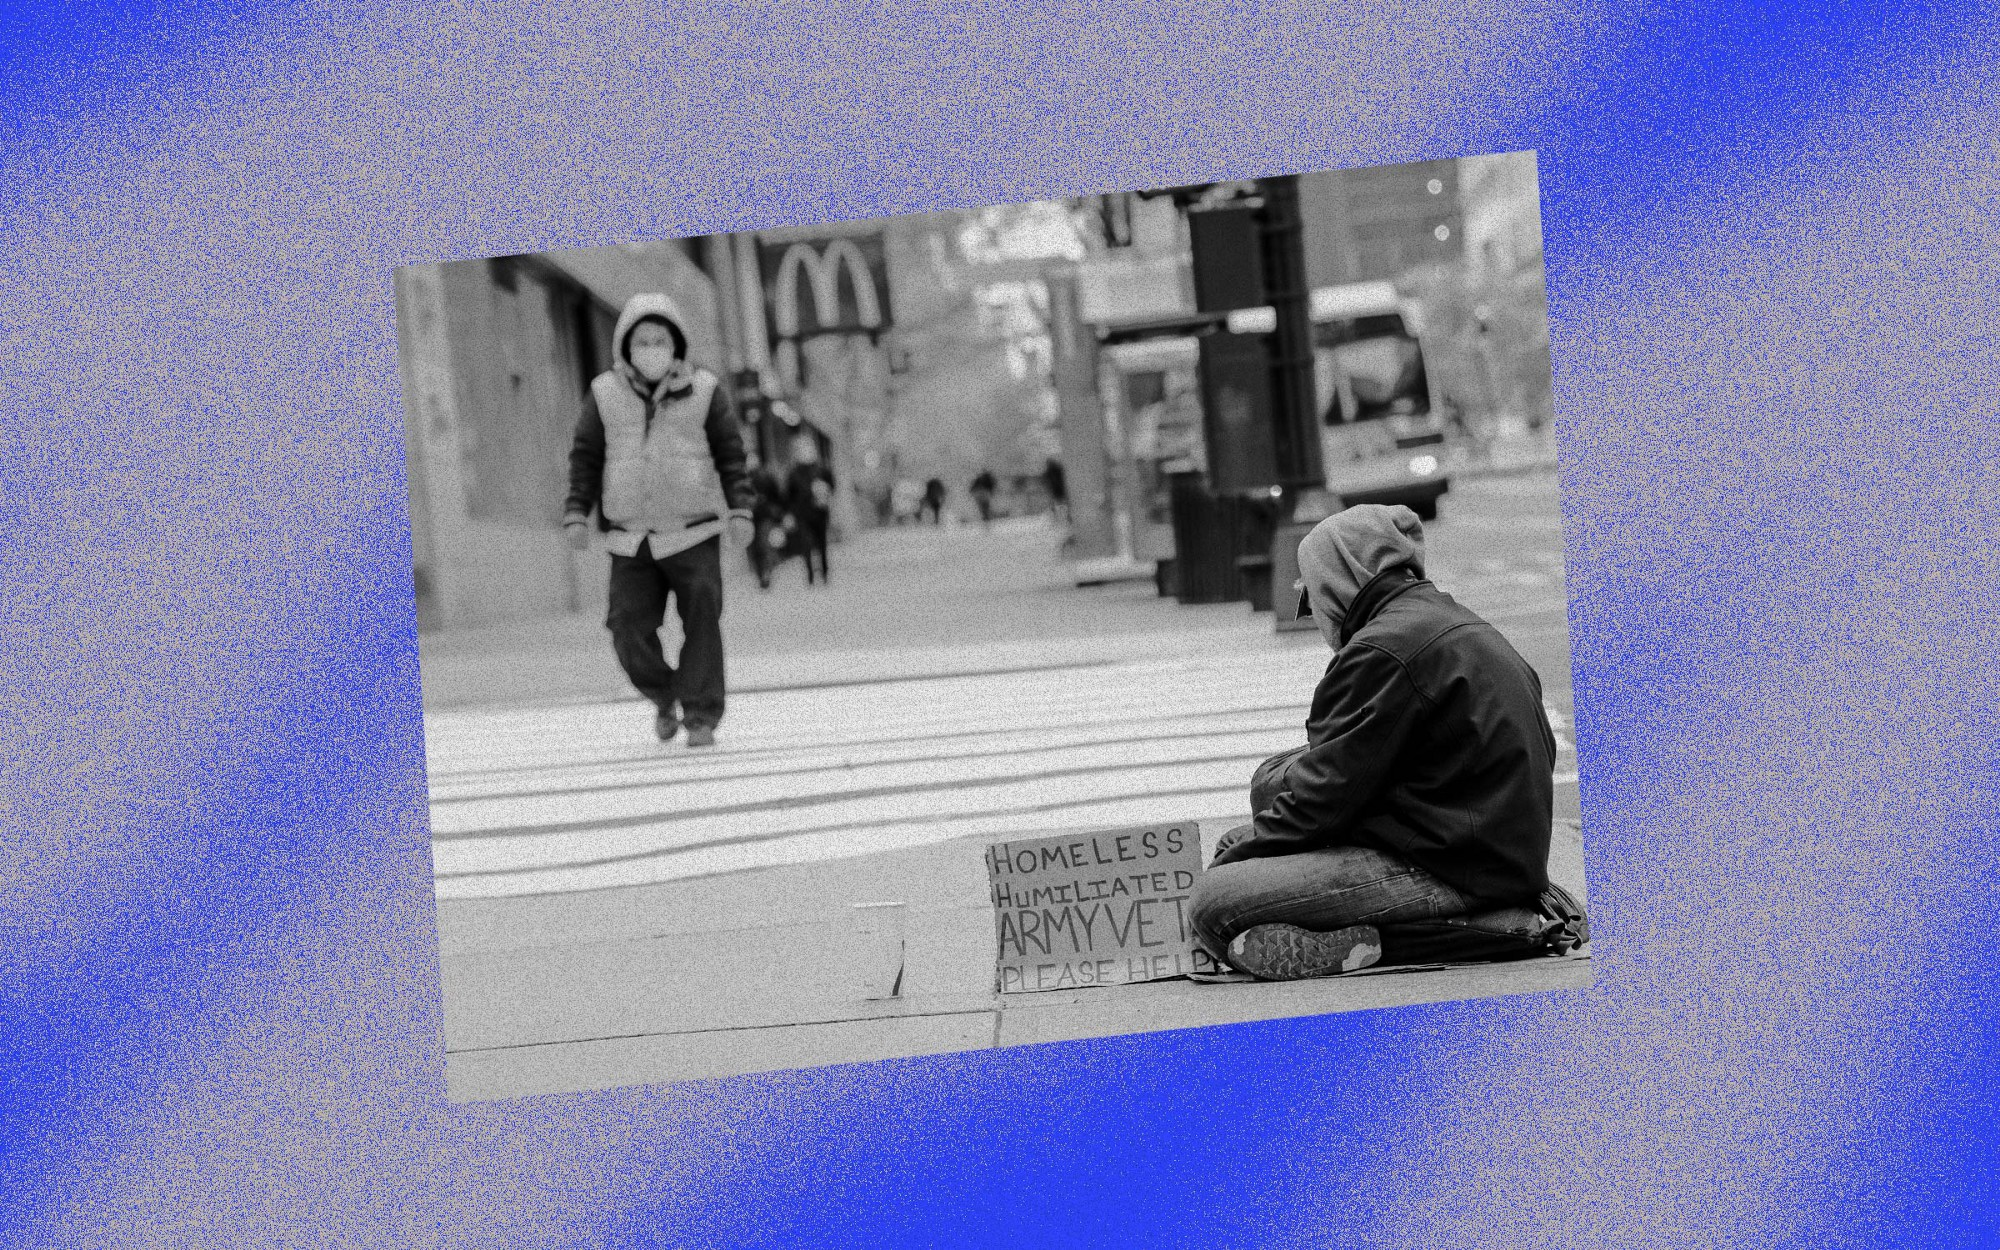 A photo of a homeless person on the street against a blue background with grey spray paint effect.